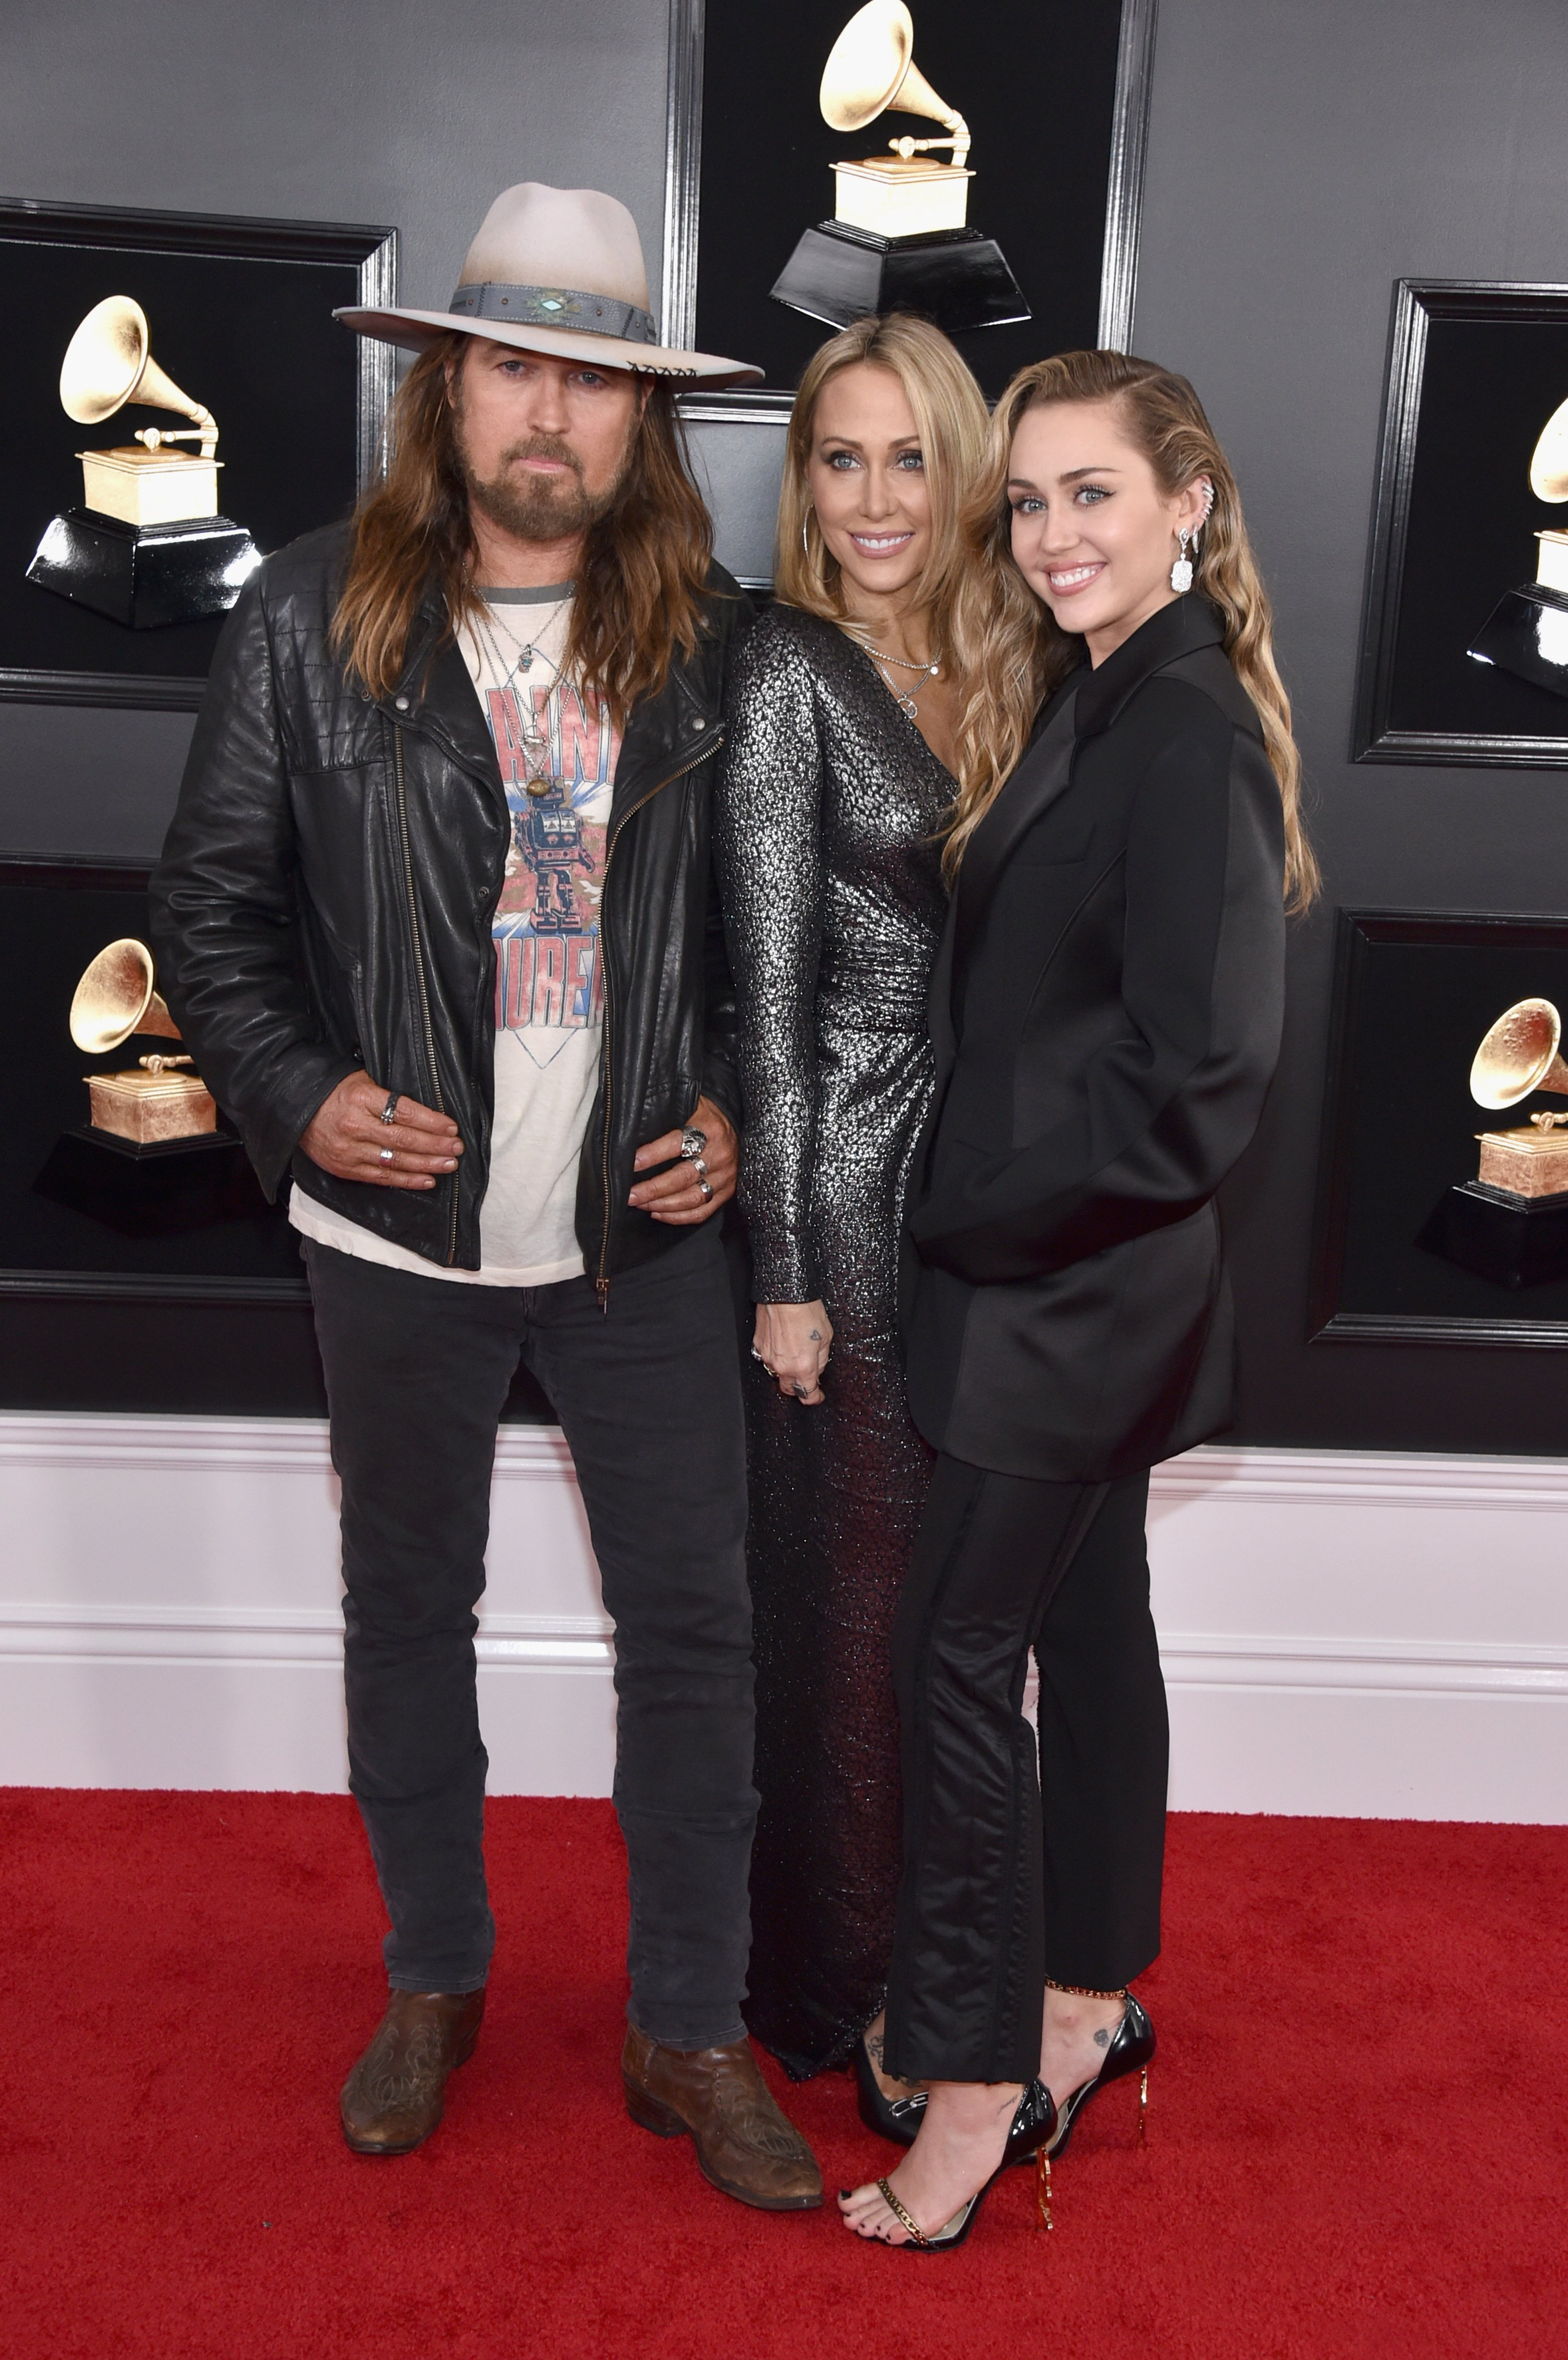 Billy Ray Cyrus, Tish Cyrus, and Miley Cyrus attend the 61st Annual GRAMMY Awards at Staples Center on February 10, 2019, in Los Angeles, California.   Source: Getty Images.